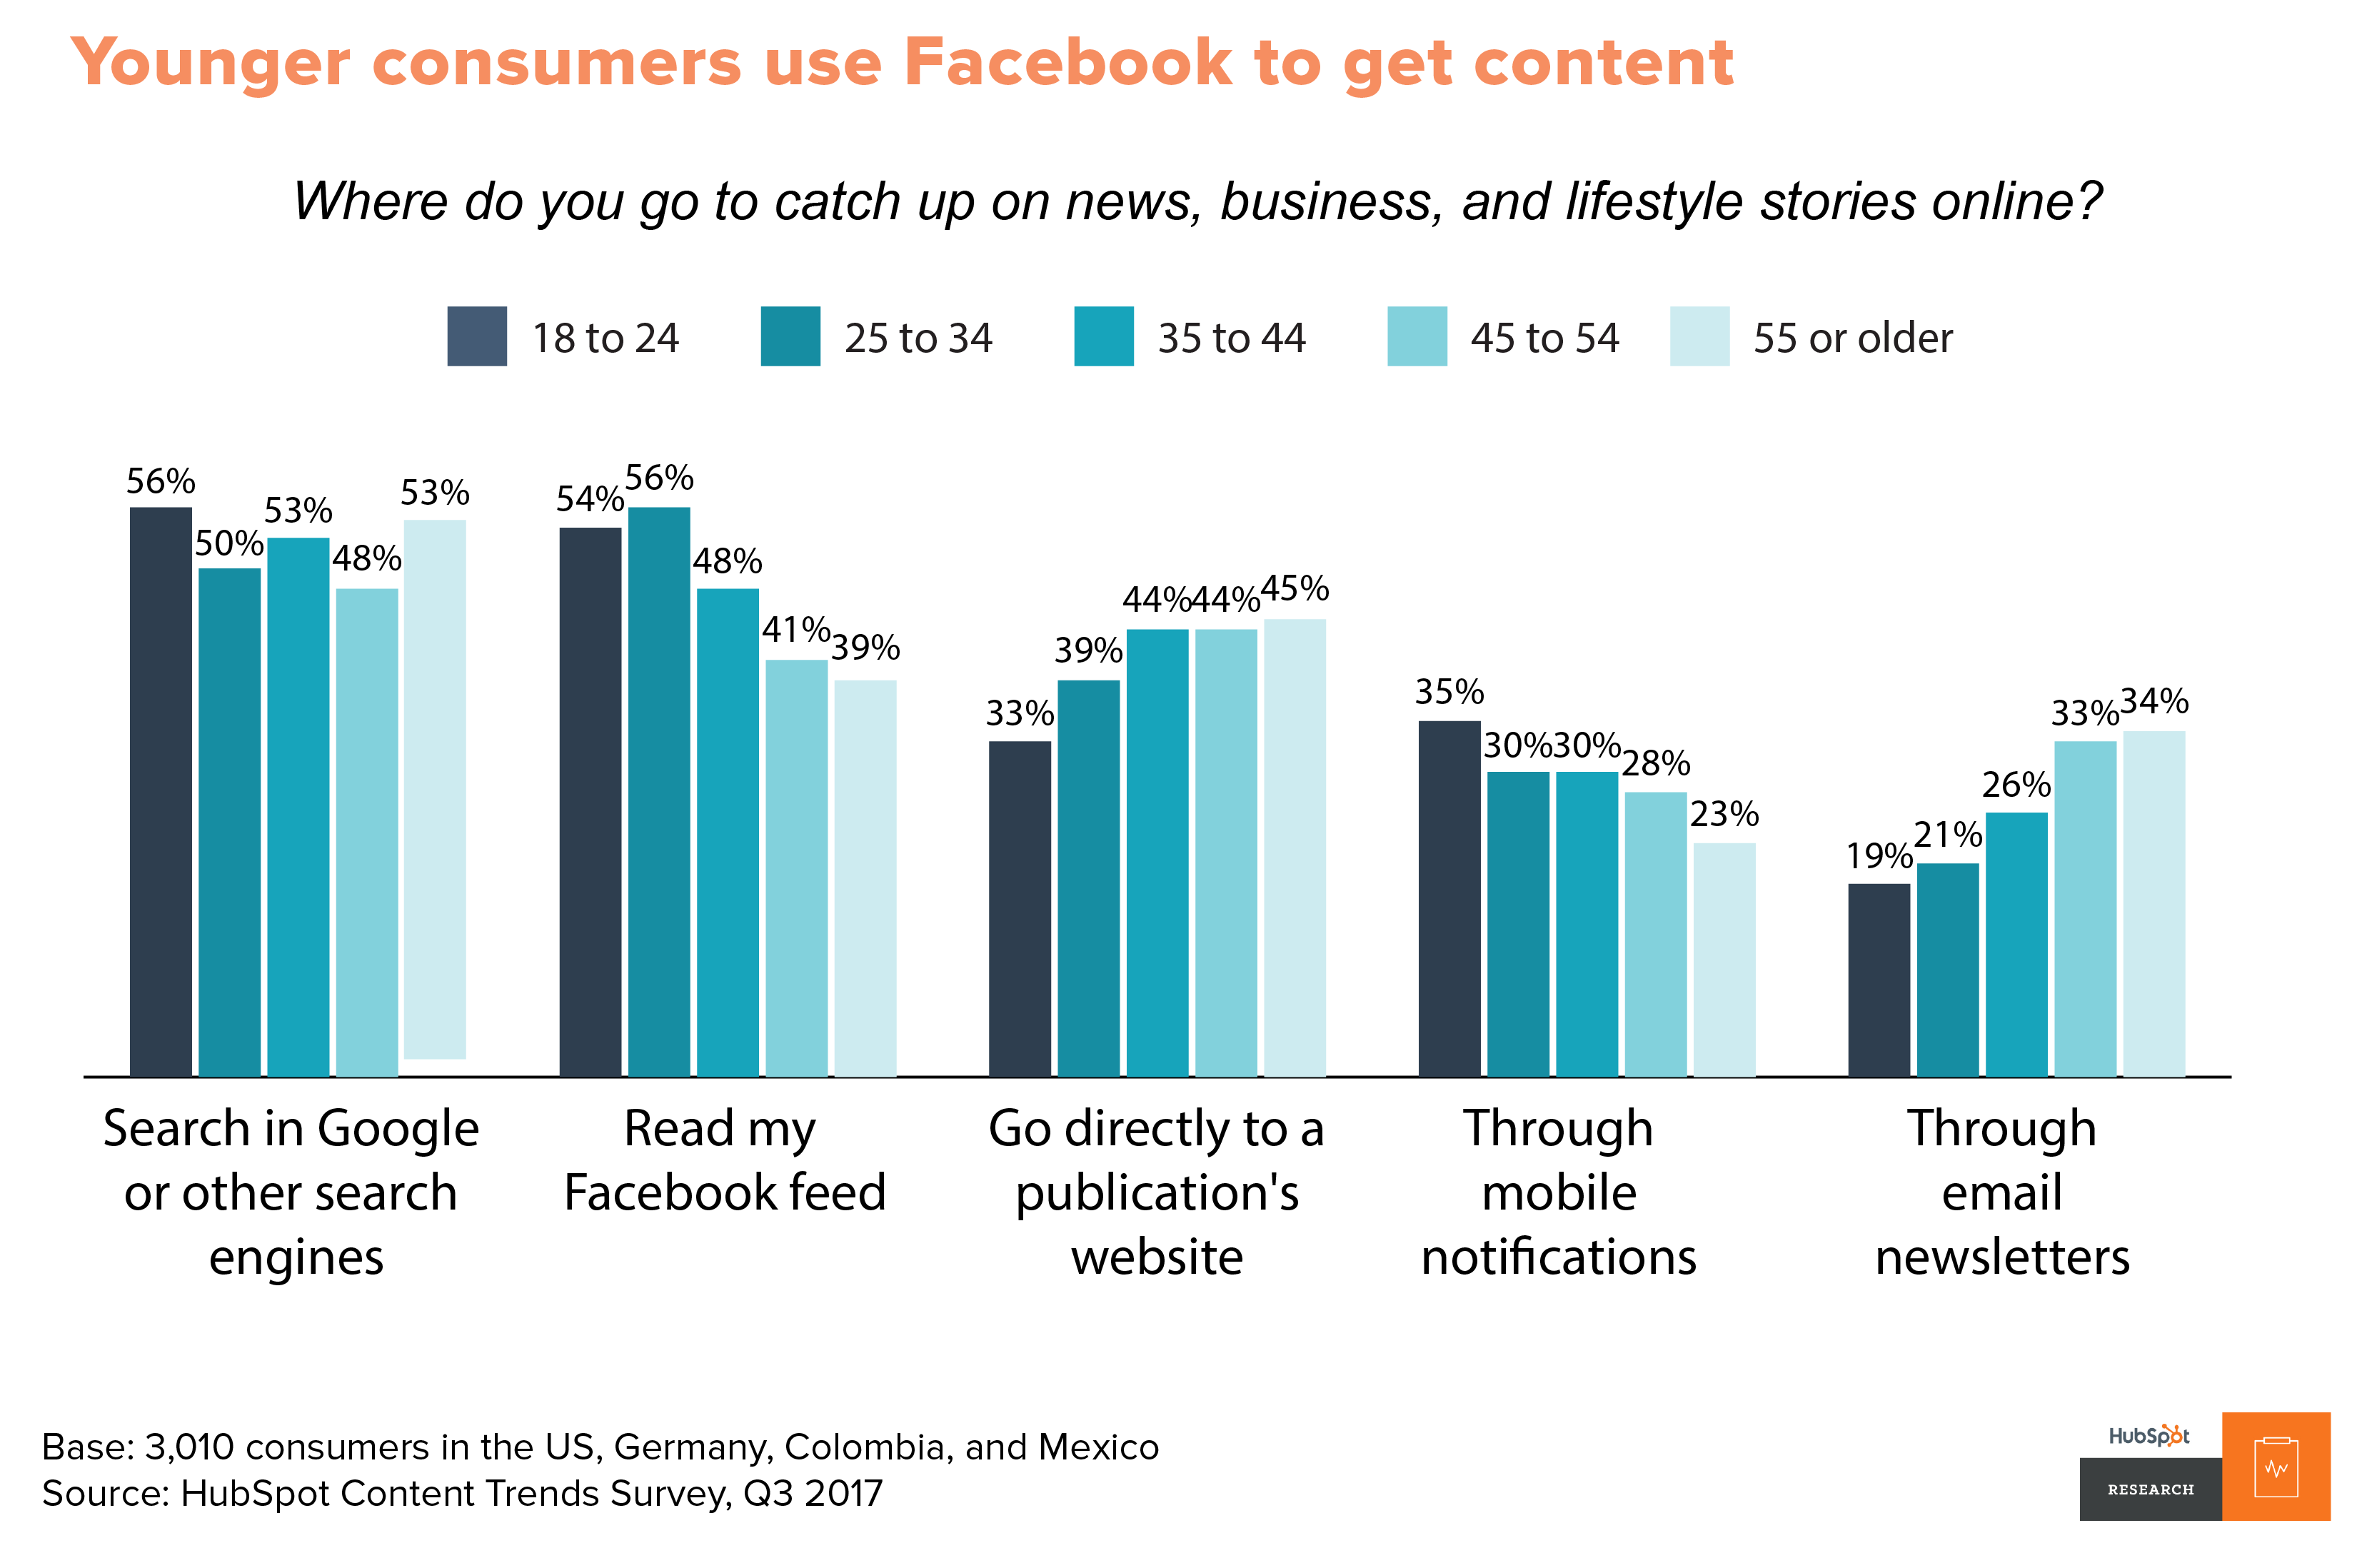 Younger consumers use Facebook to get content